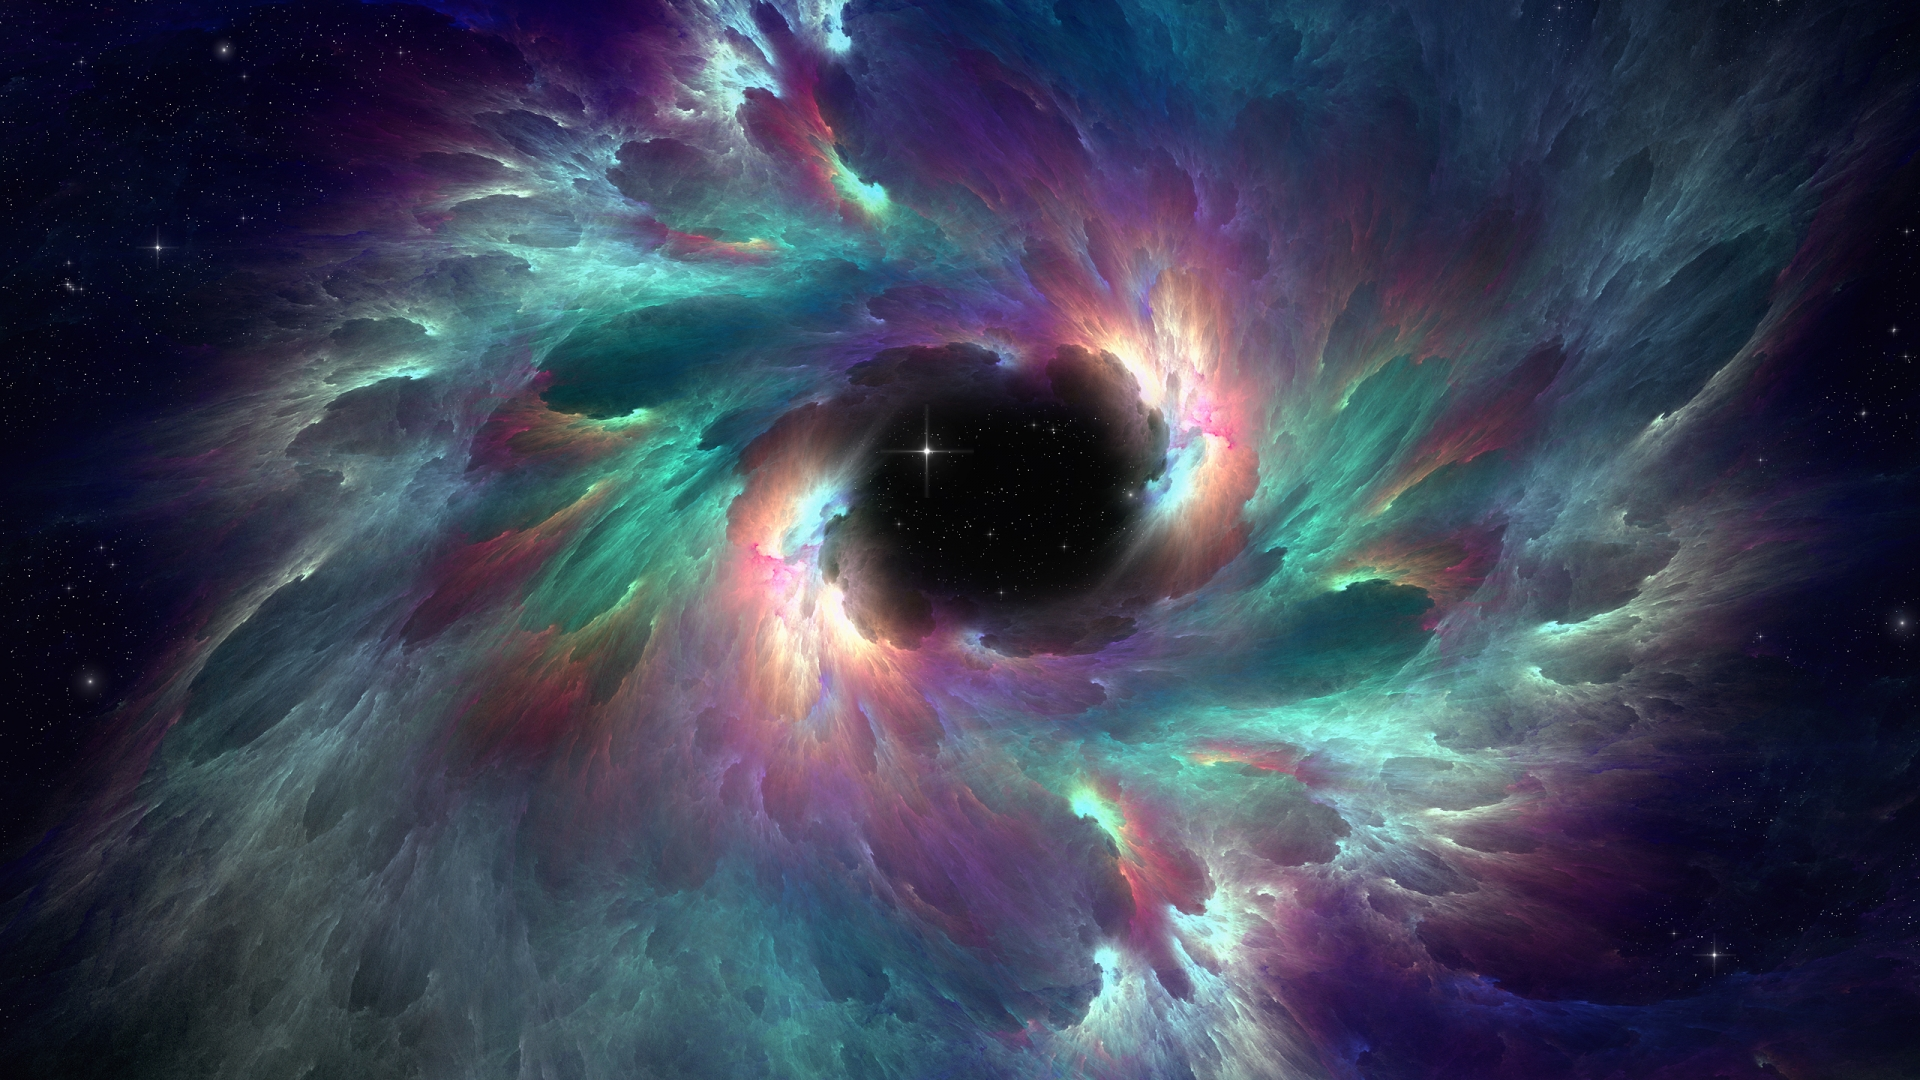 outer space nebula hd - photo #8